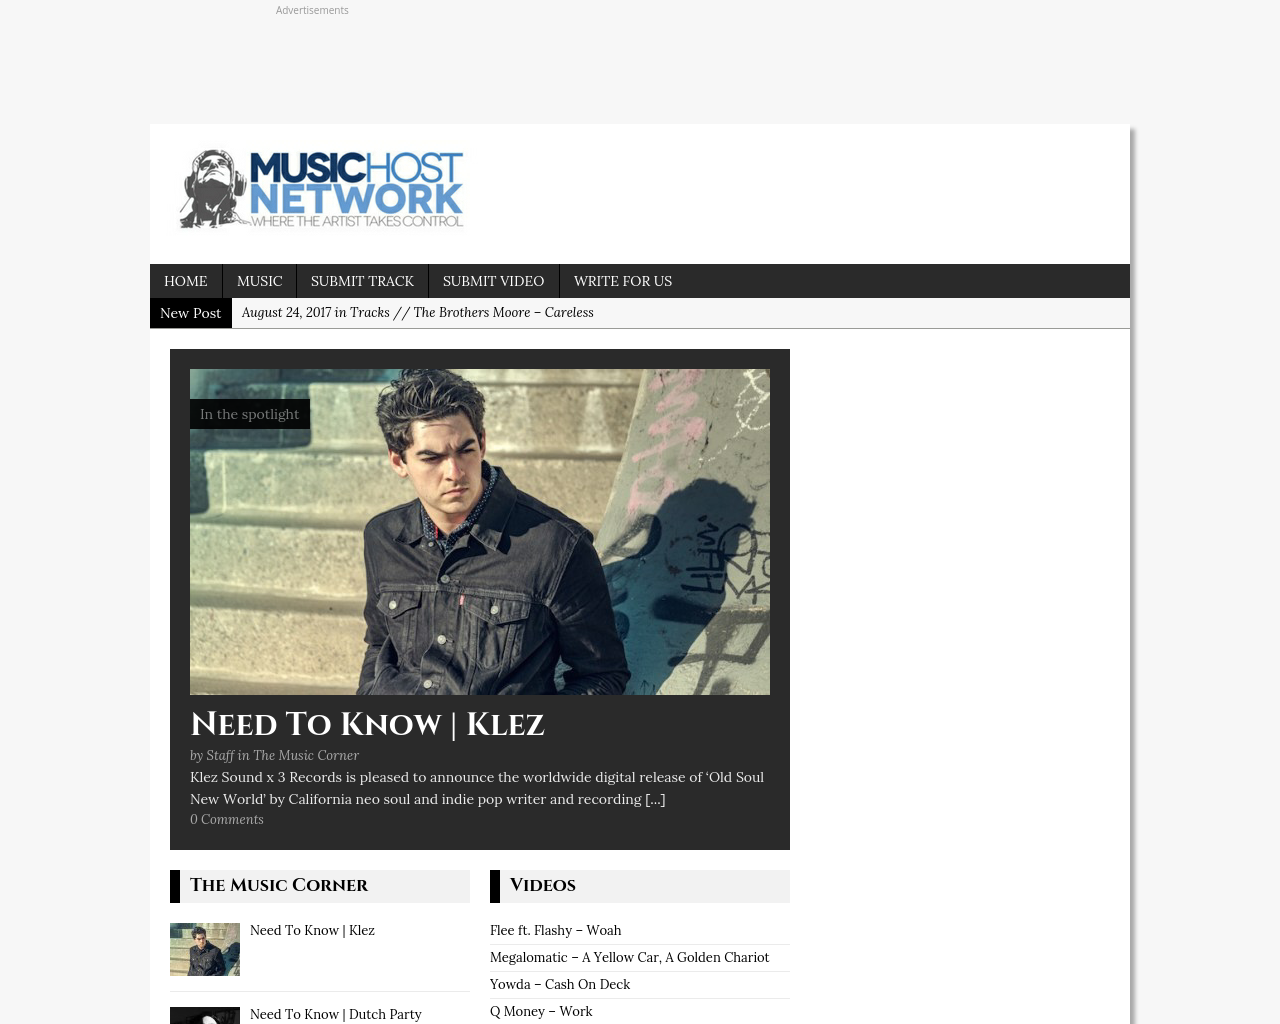 Music-Host-Network-Advertising-Reviews-Pricing